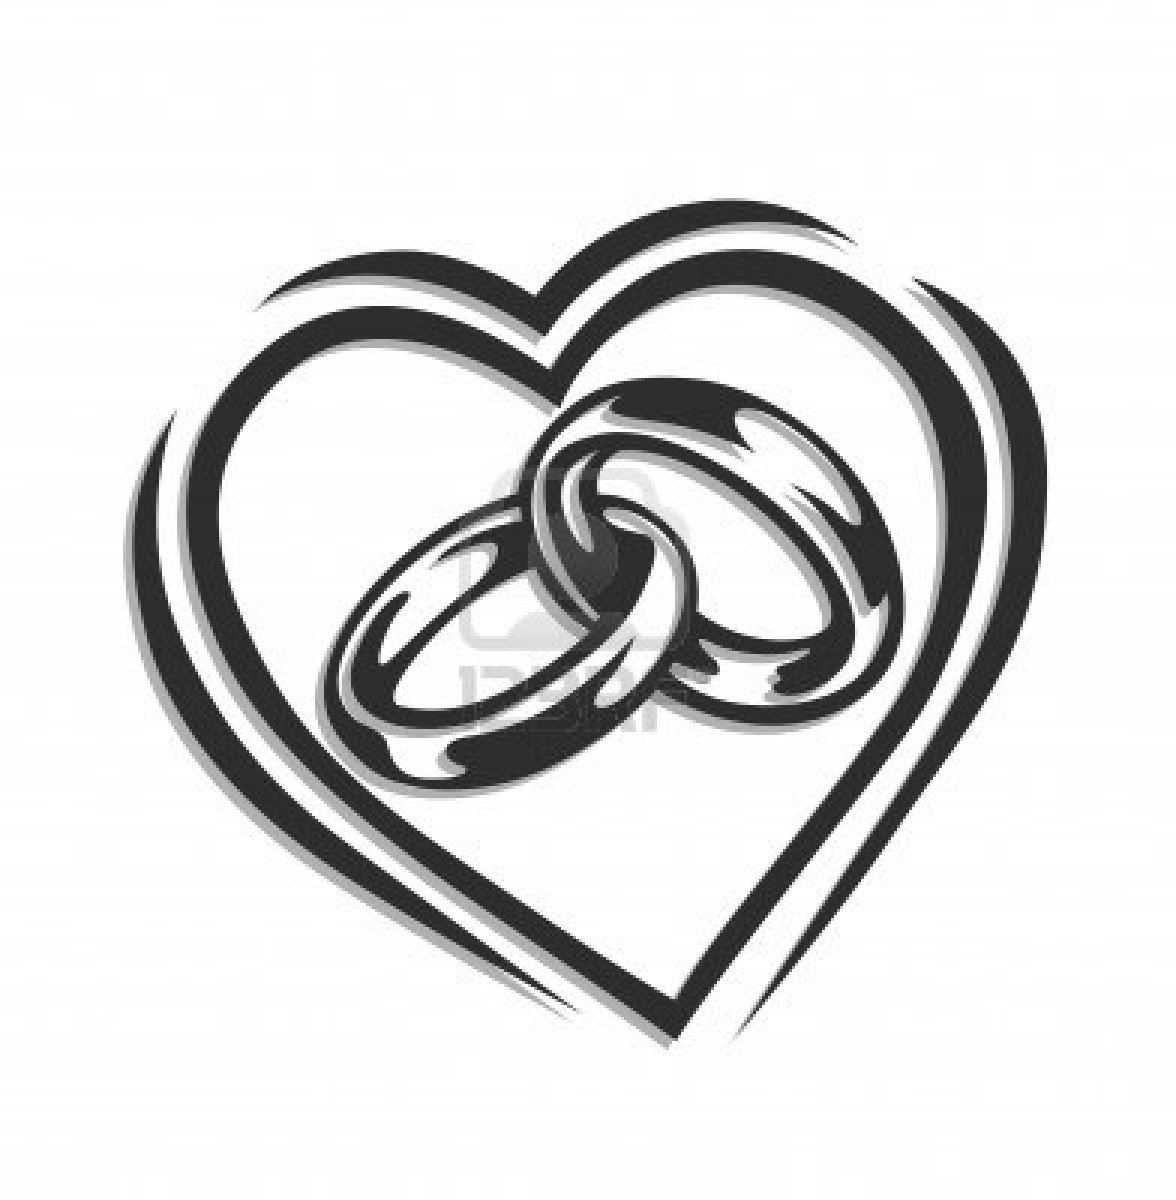 Linked Wedding Rings Clipart Wedding Ring Clipart Jewelry Shopping